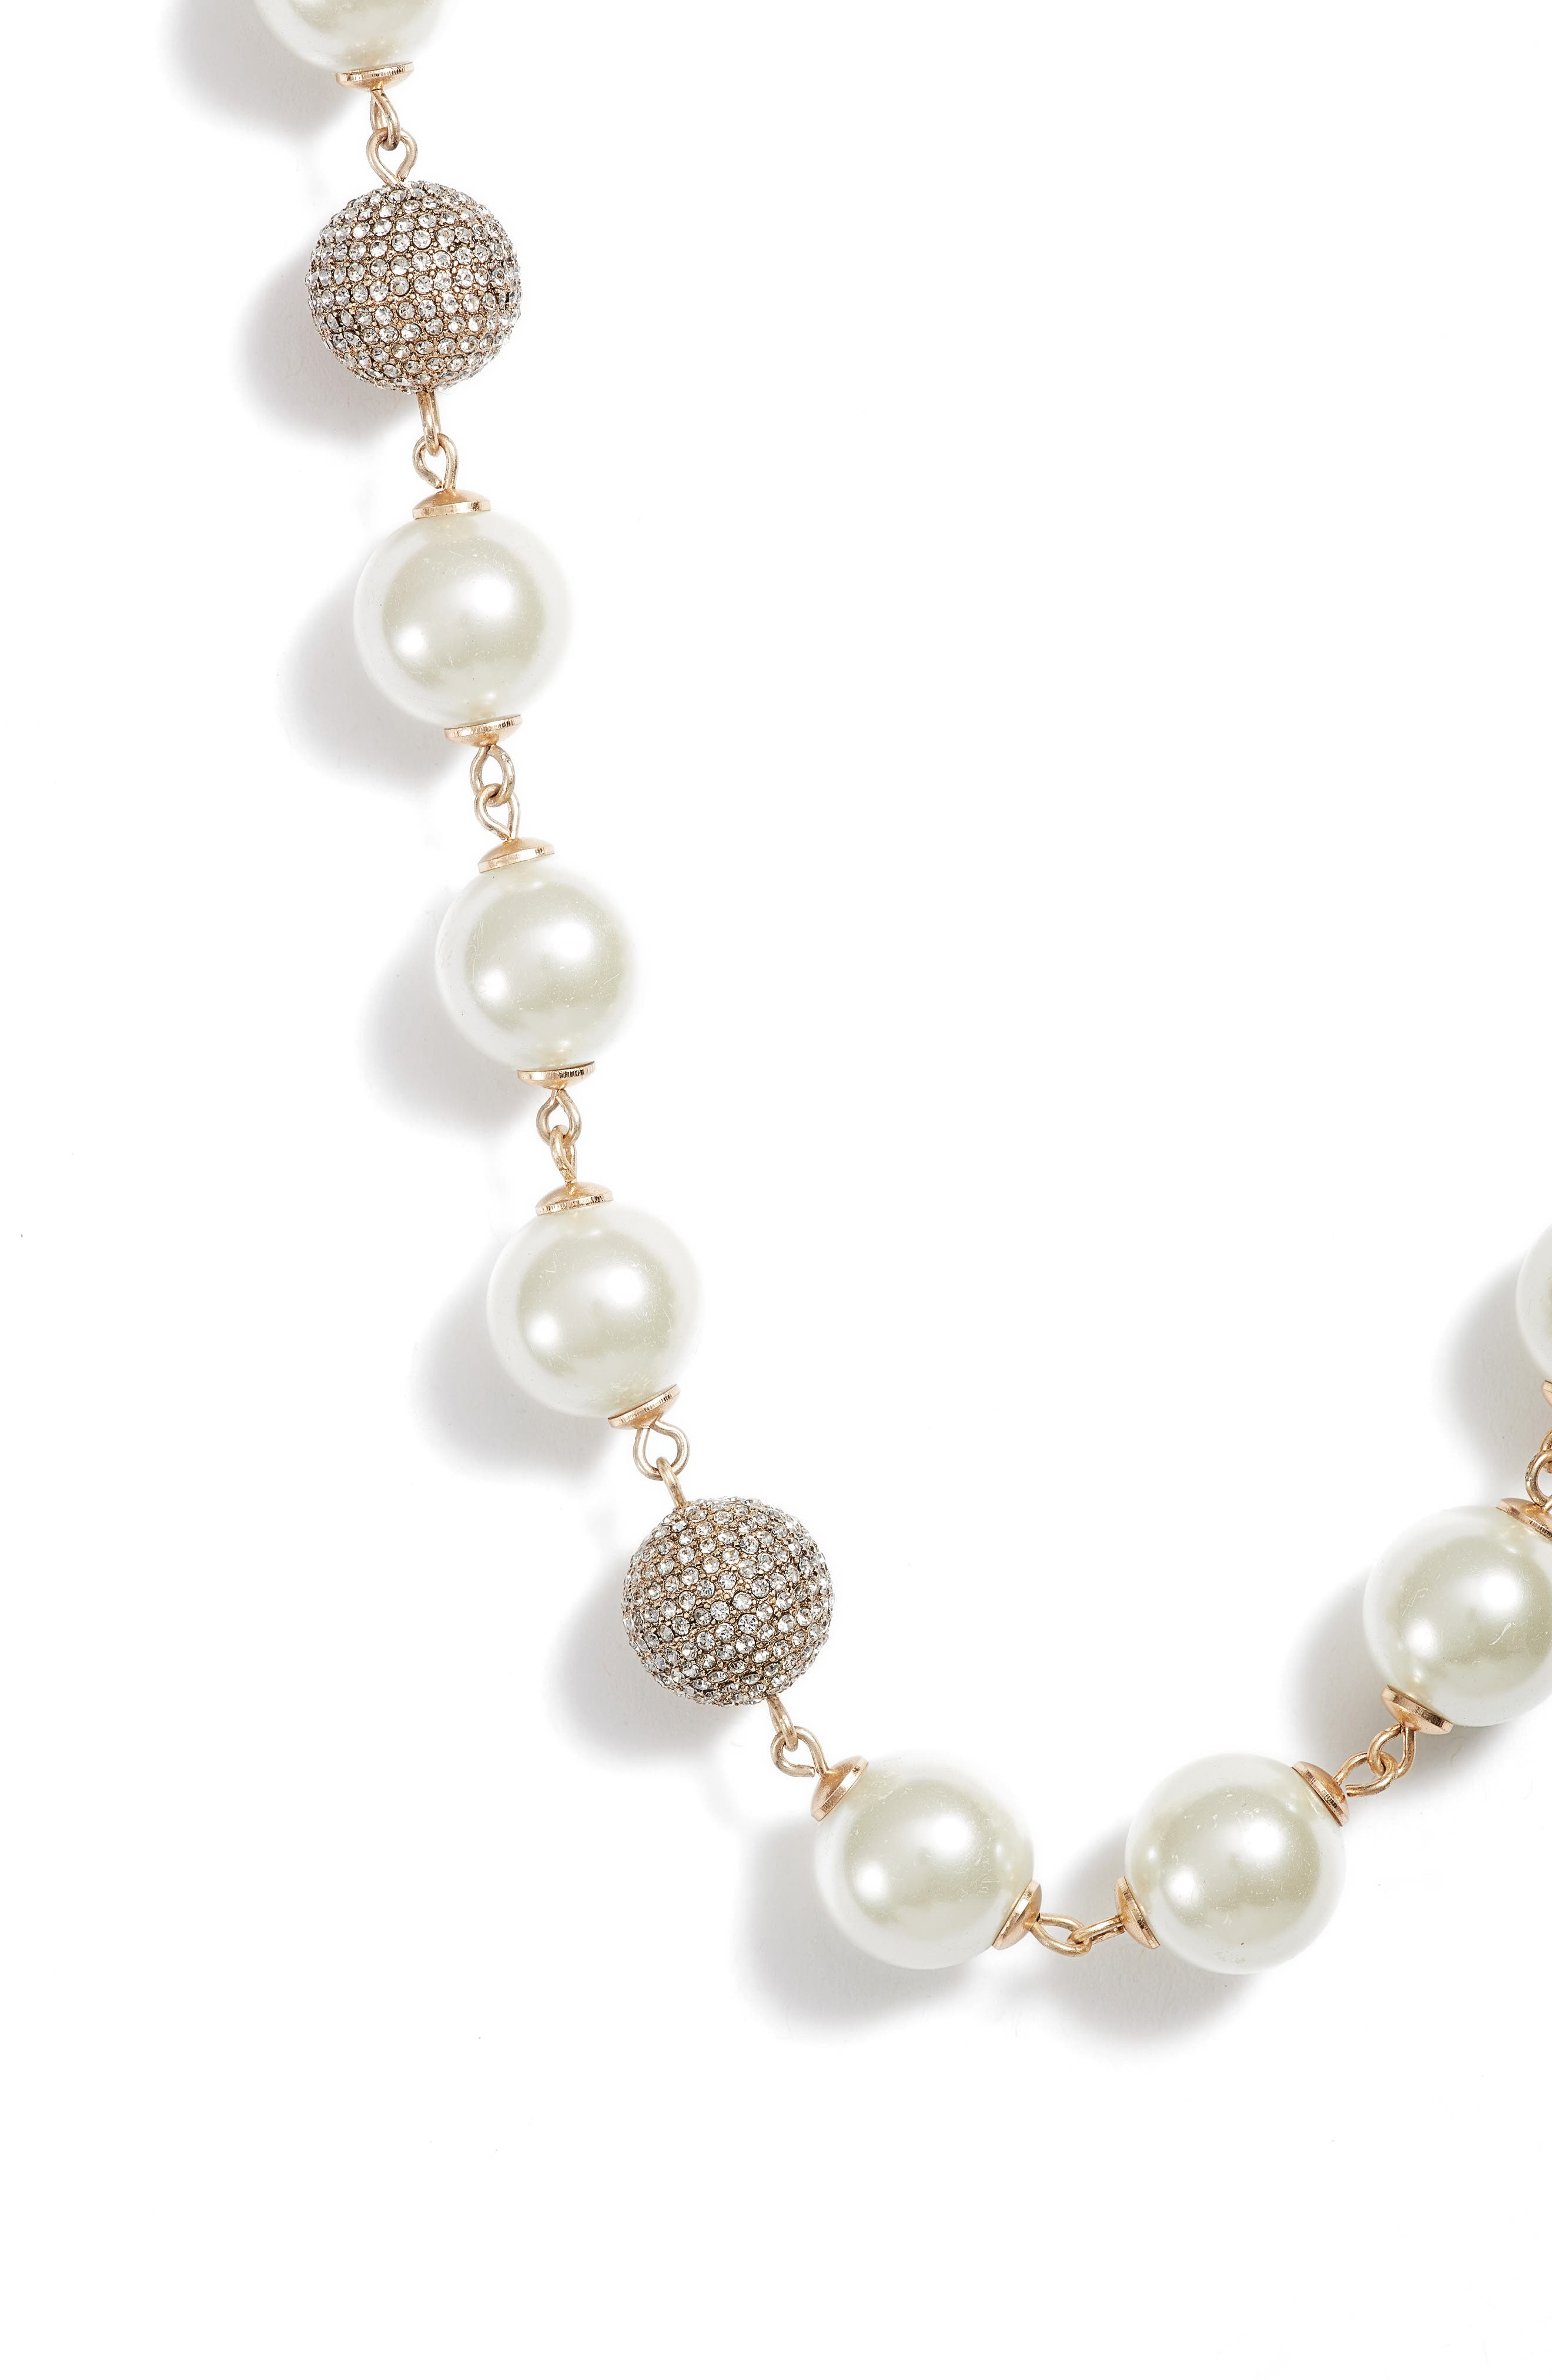 Long Imitation Pearl Necklace,                             Alternate thumbnail 2, color,                             Gold/ Pearl/ Crystal